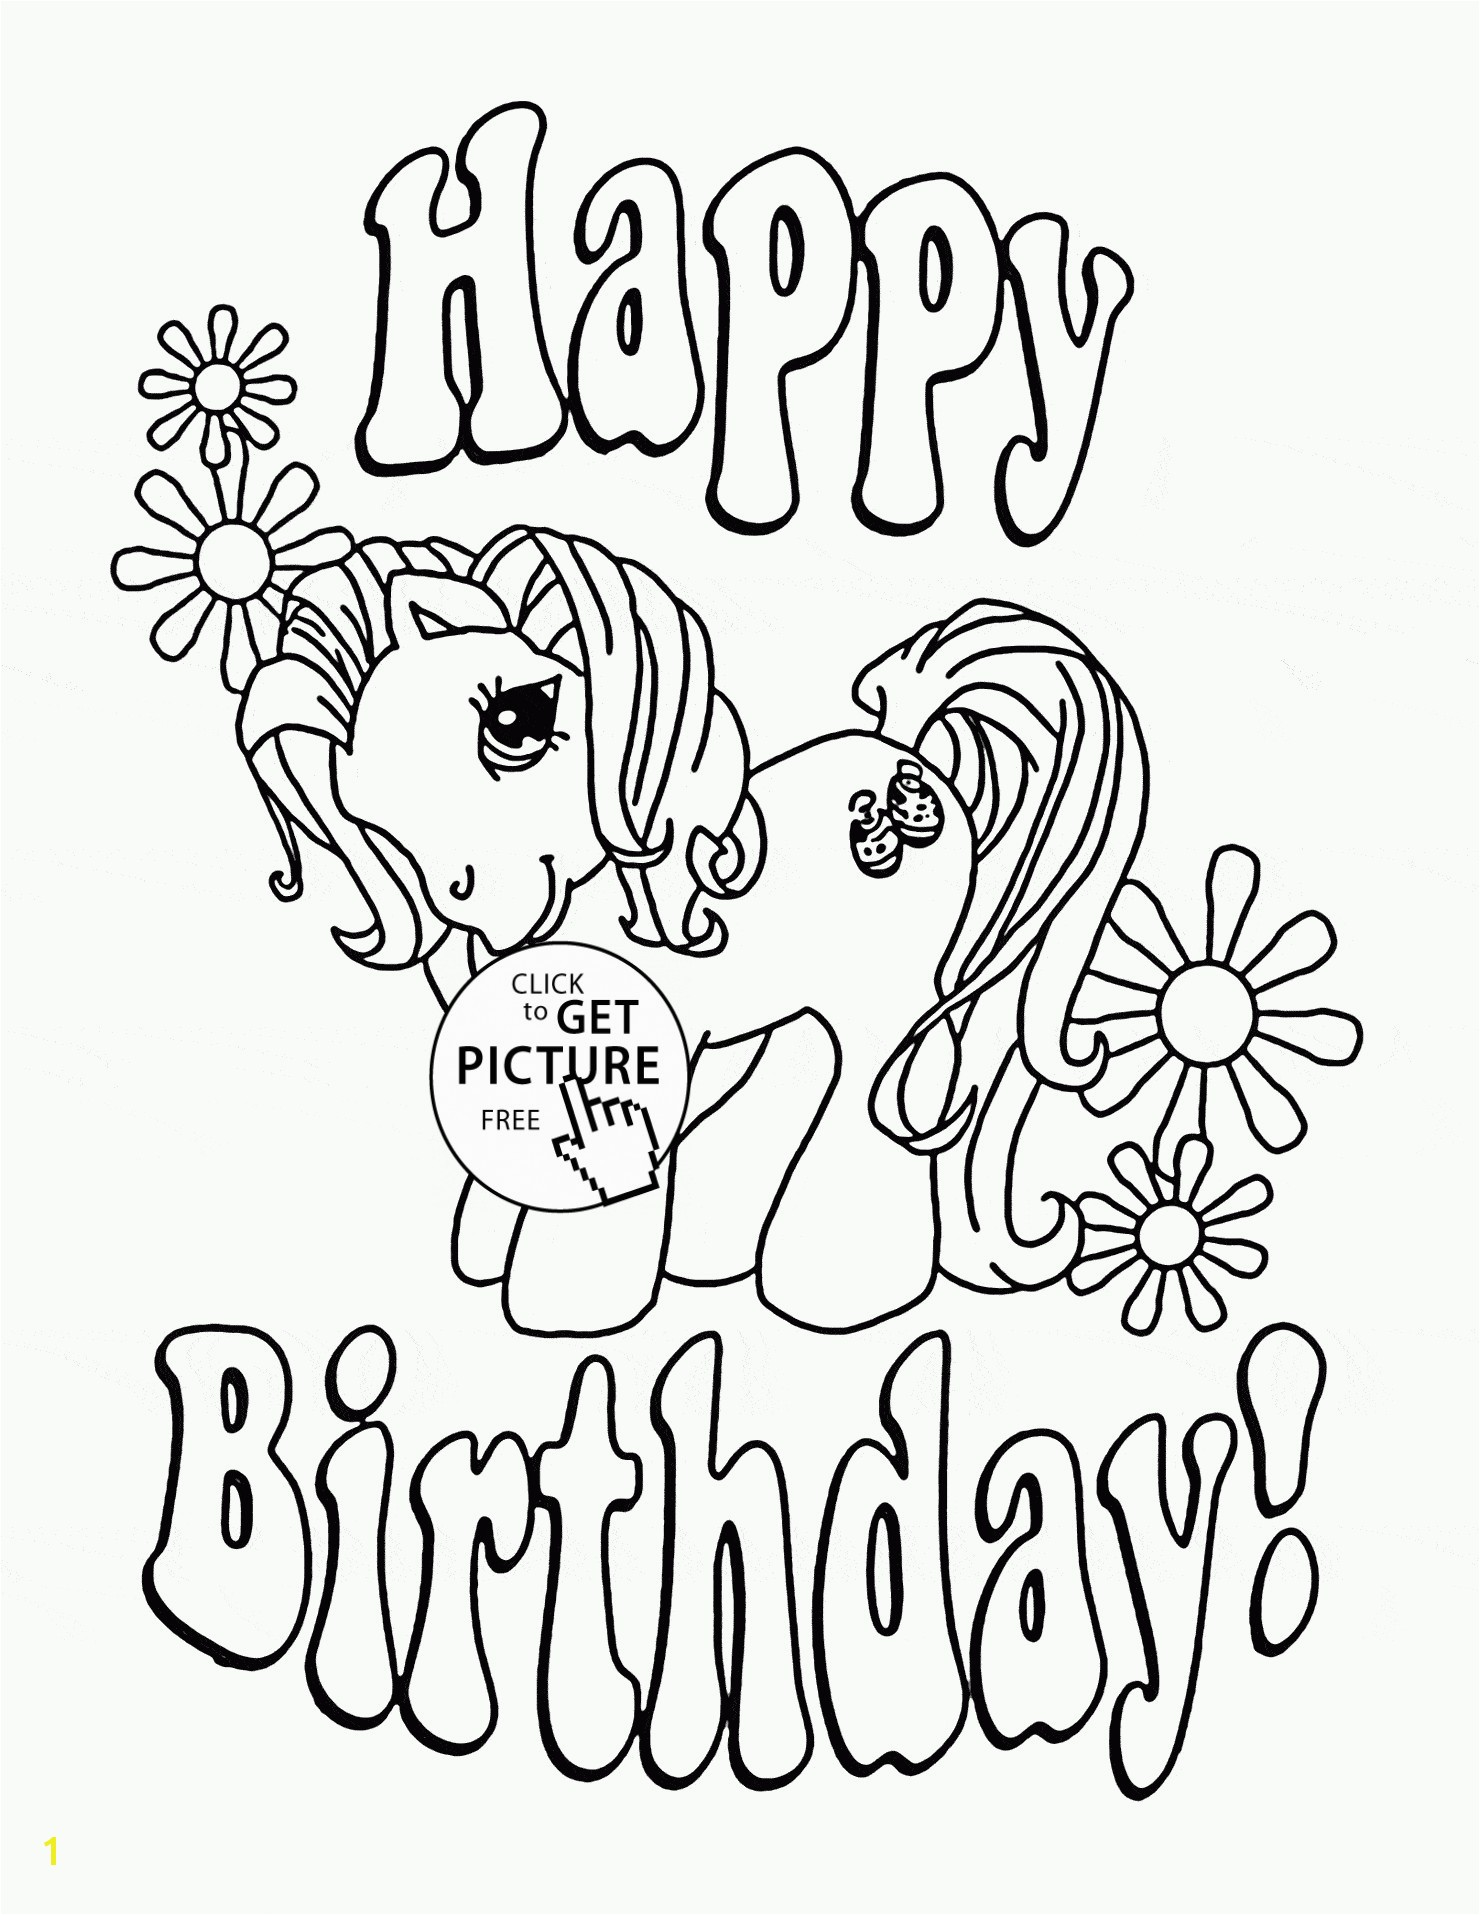 Unlock Birthday Coloring Pages Unique Printabl Cute Happy